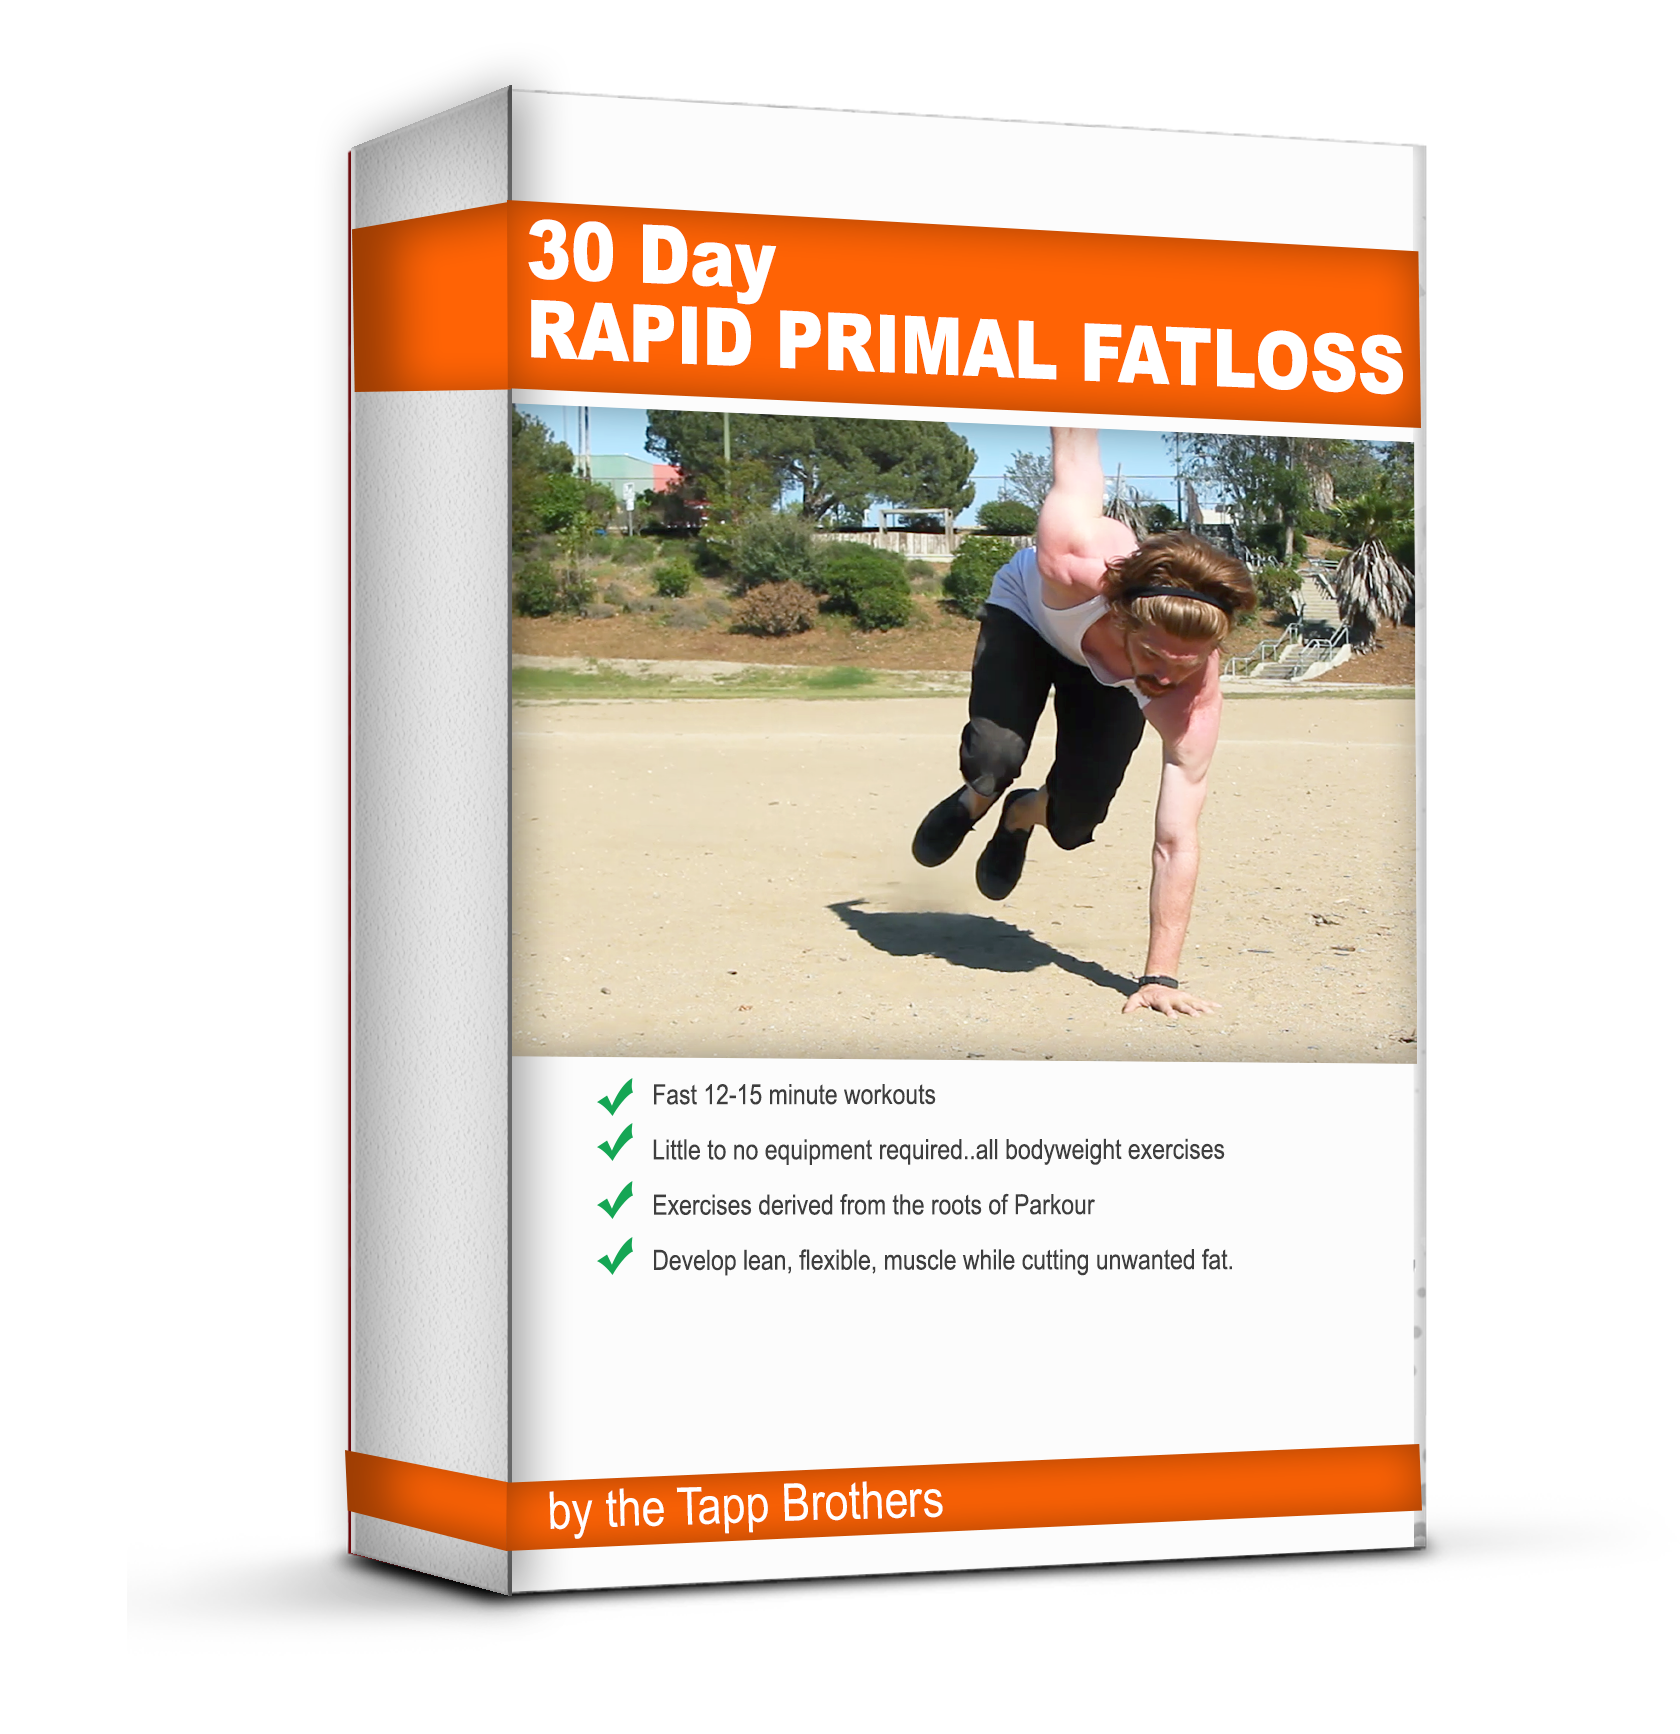 Best way to achieve rapid weight loss